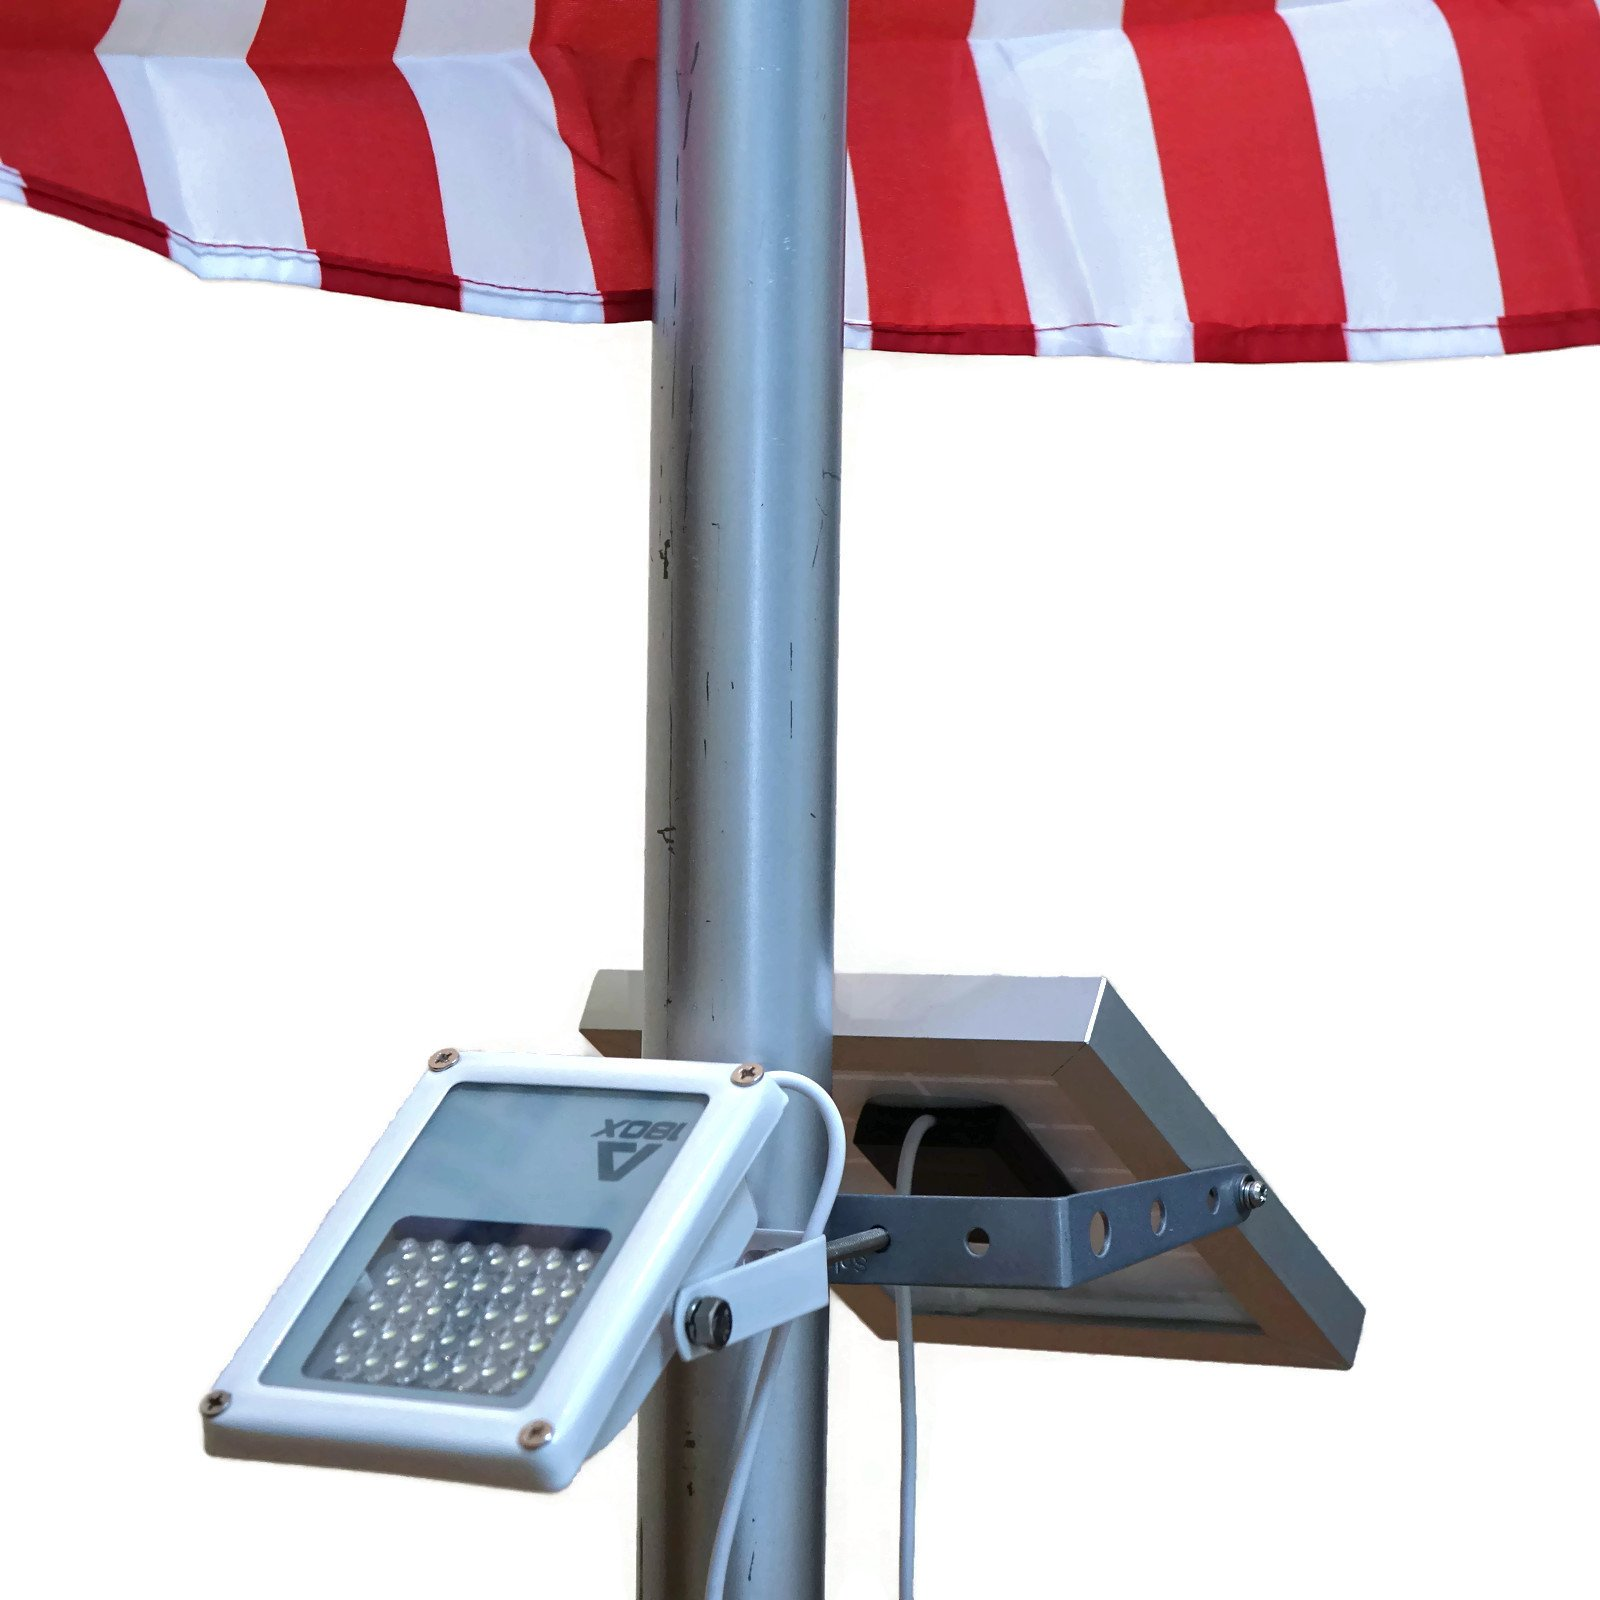 ALPHA 180X Flag Pole Light (Warm White LED) for Solar Flagpole Lighting/Cast Iron Street Light Style Doubled as Floodlight/U-Bracket Fits Max Pole Diameter 2.5'', Warm White Light